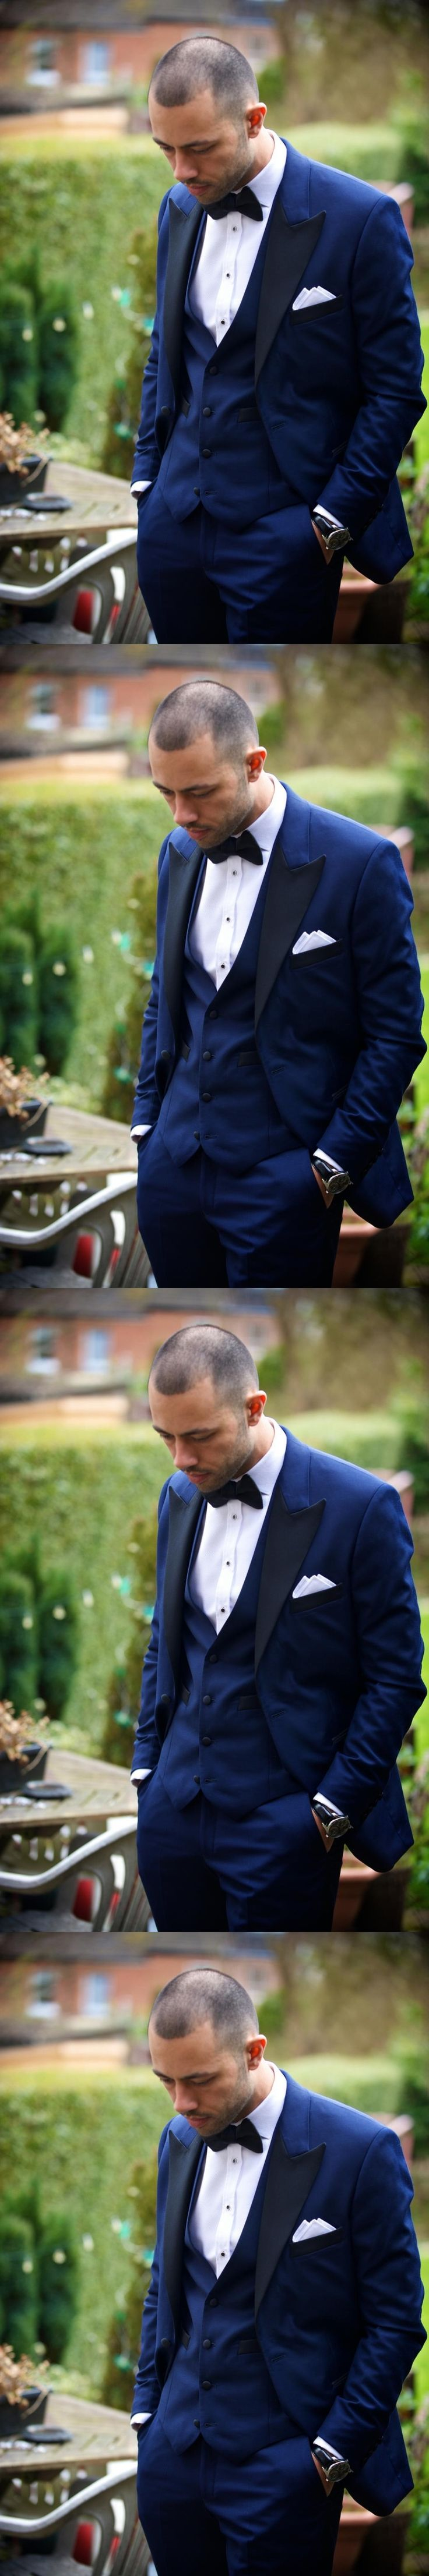 2017 Peaked Lapel Tuxedos Groomsmen Suits Royal Blue Wedding Suits For Men One Button Men Suits Handsome Party Prom Tuxedo